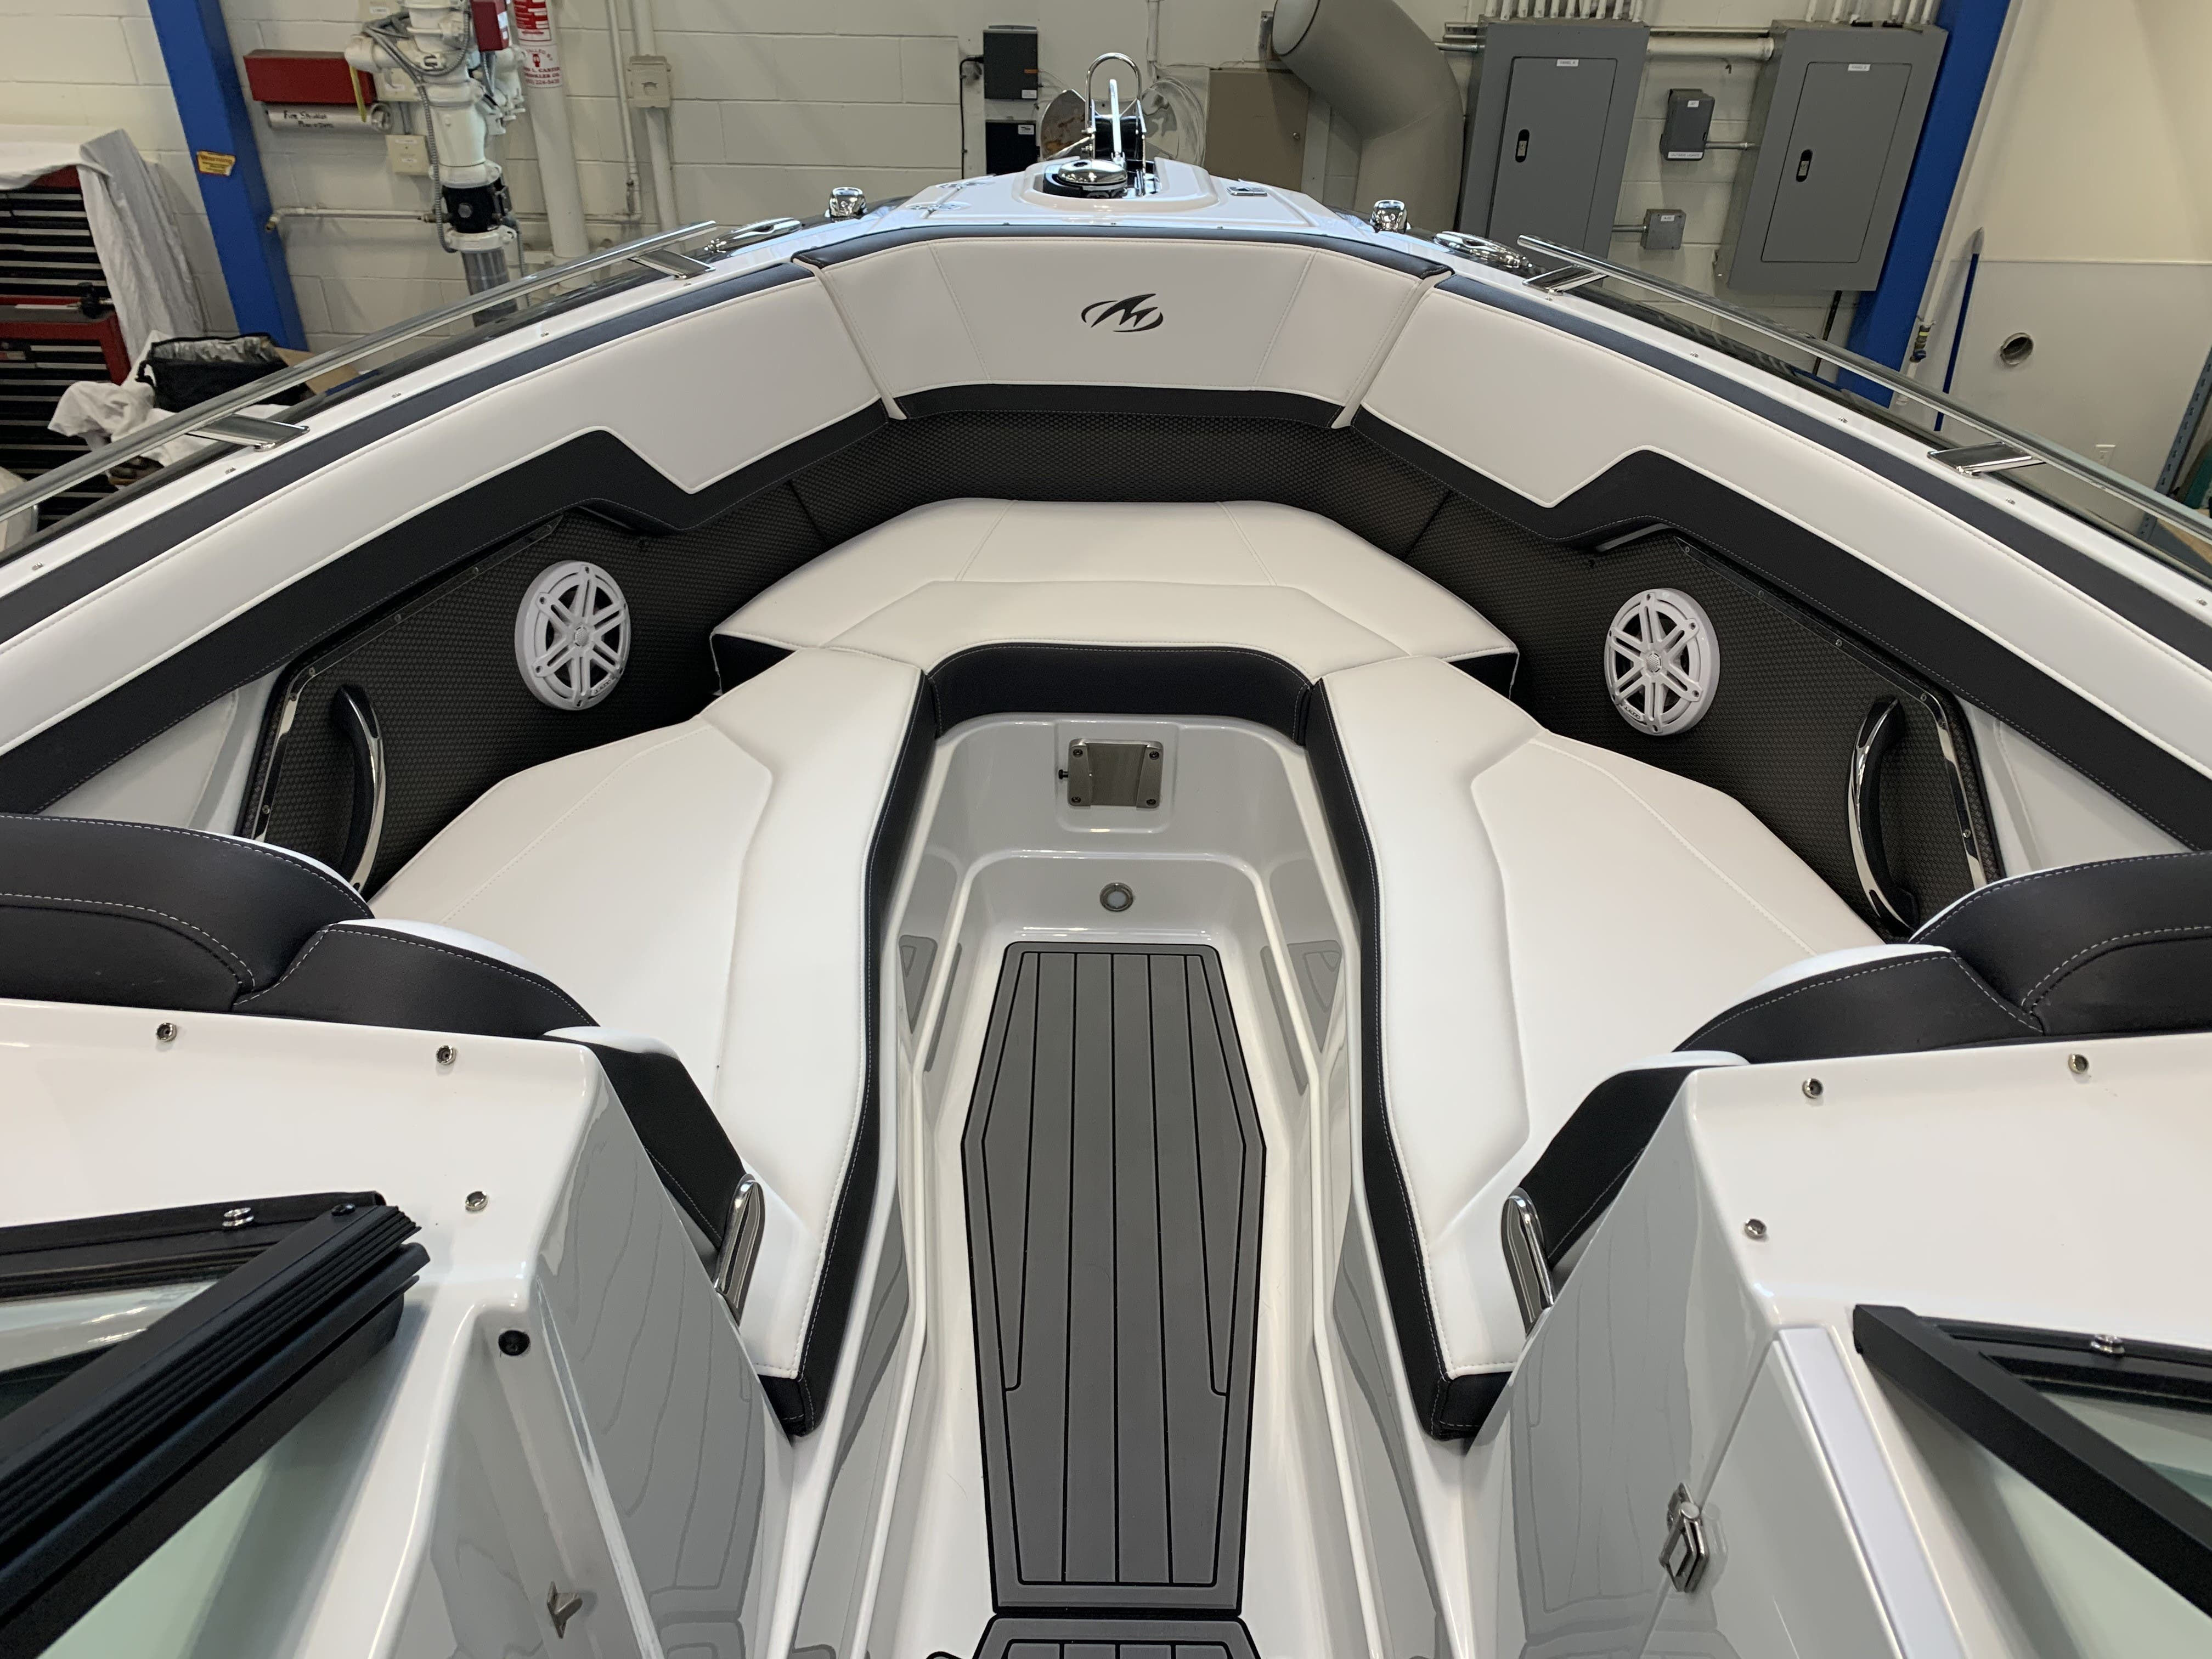 2022 Monterey boat for sale, model of the boat is 278ss & Image # 3 of 18